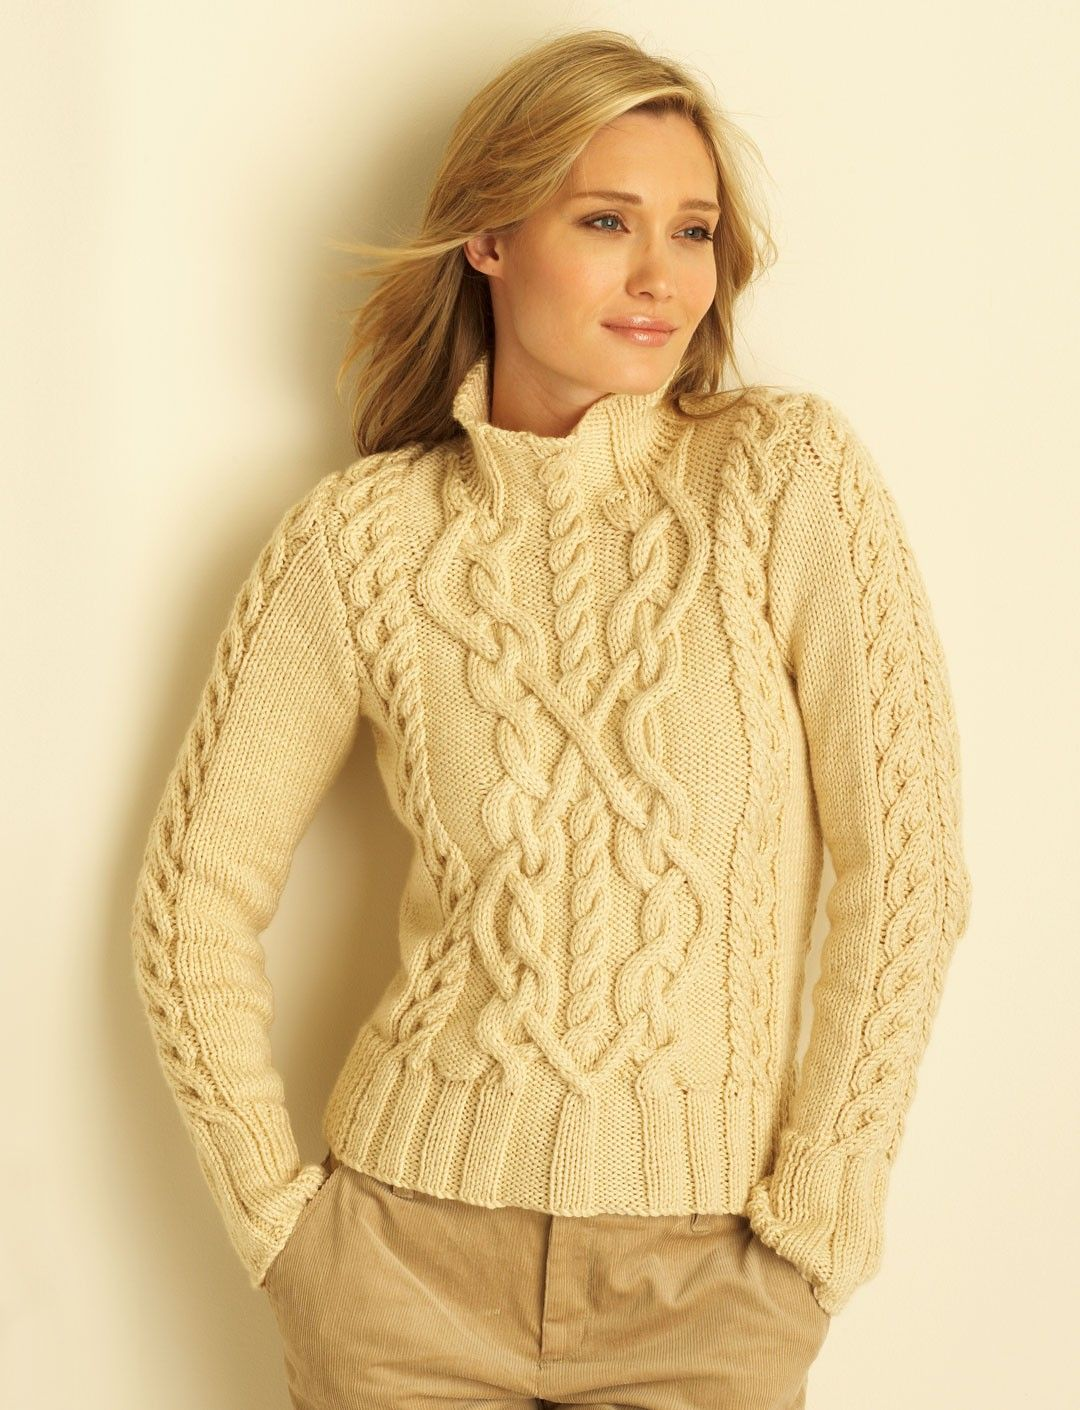 Knitting Cardigan Design : Free pattern yarnspirations bernat cable sweater